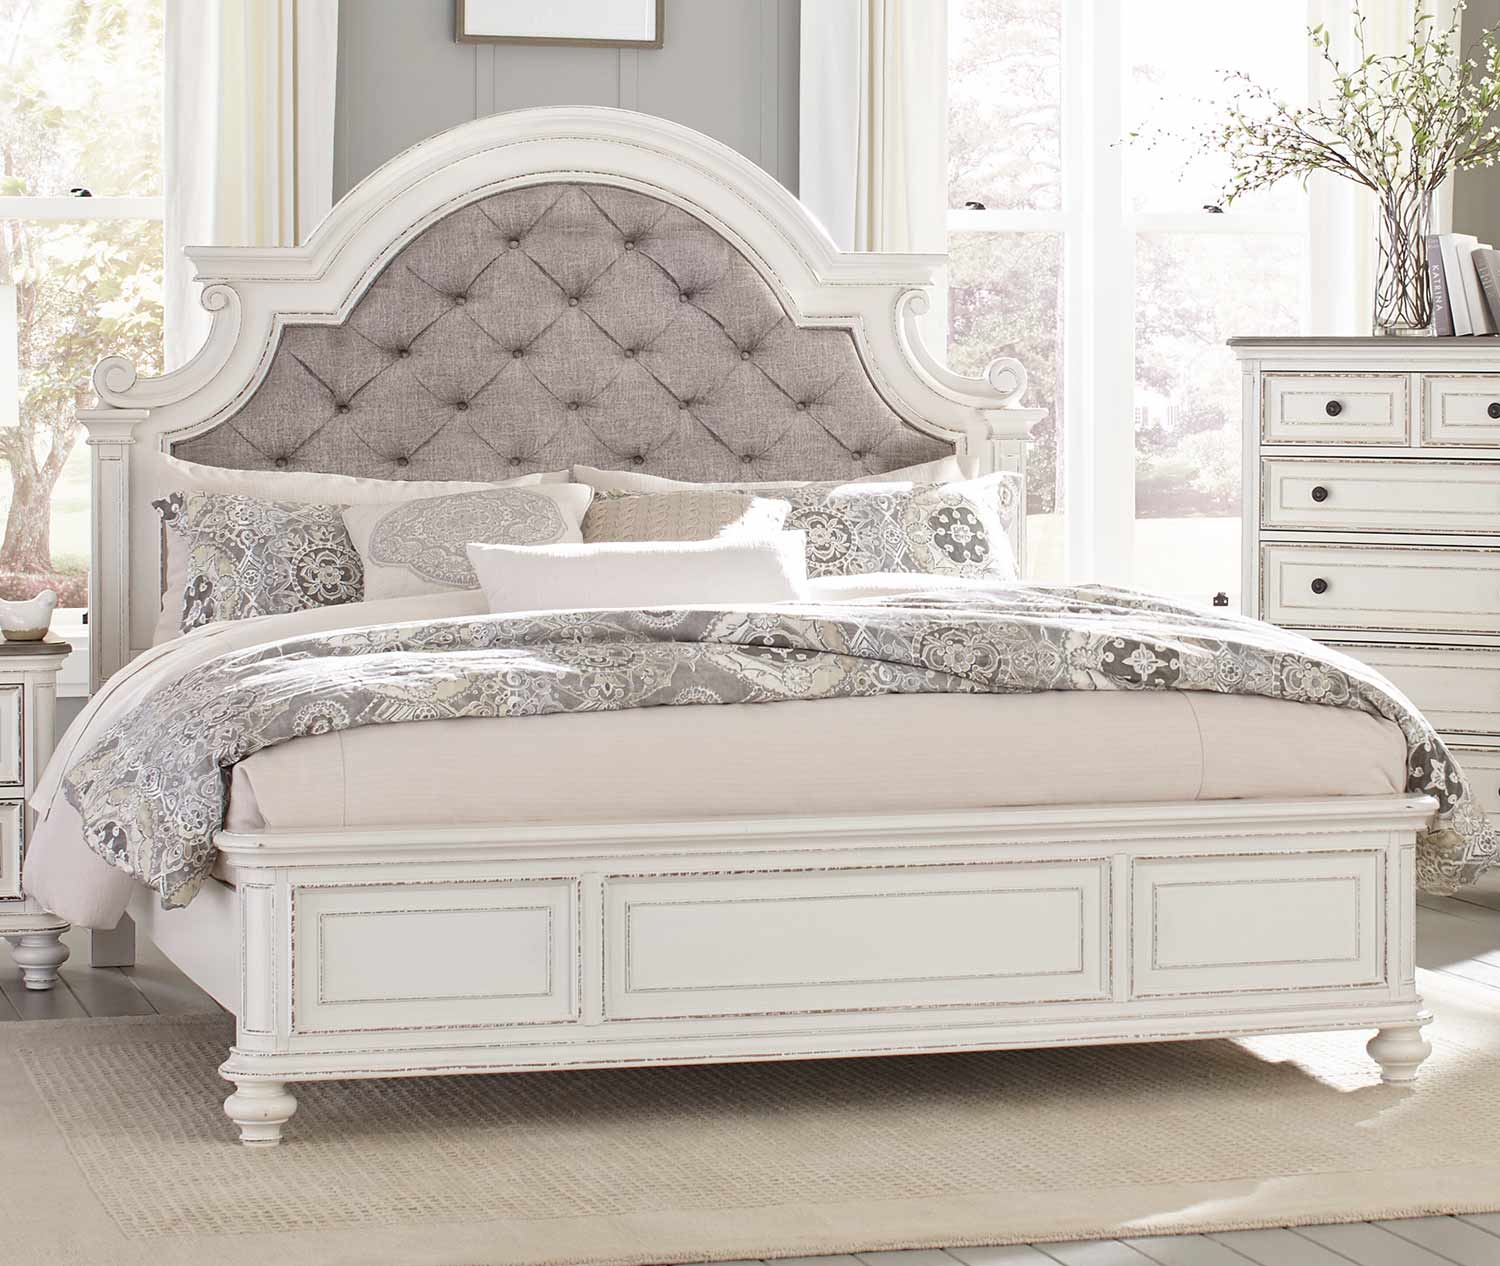 Homelegance Baylesford Bed - Antique White Rub-Through Finish